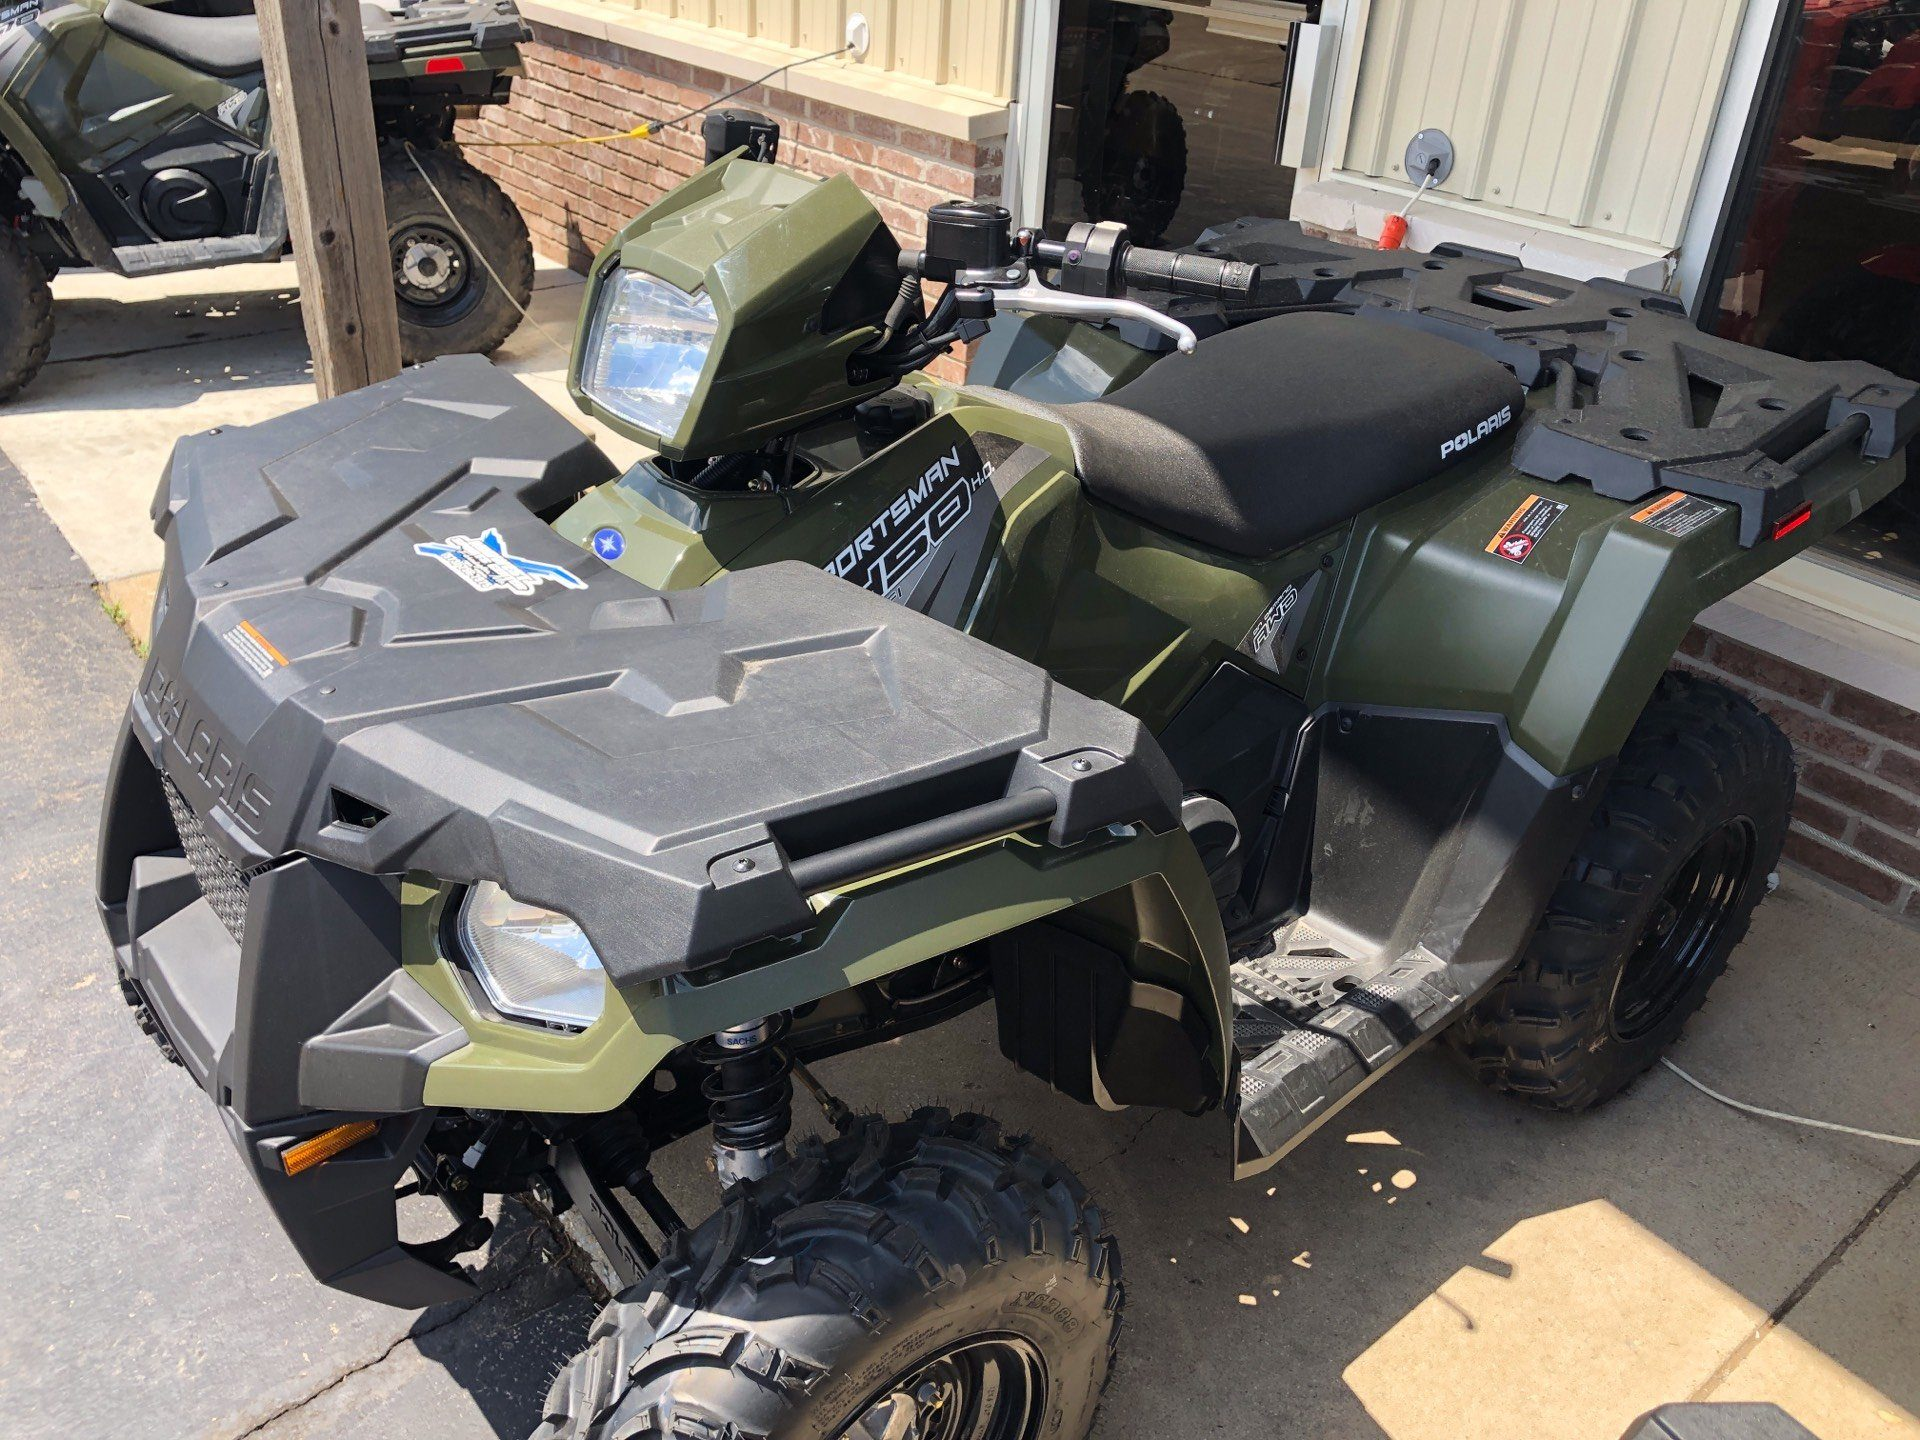 2019 Polaris Sportsman 450 H.O. in Farmington, Missouri - Photo 2